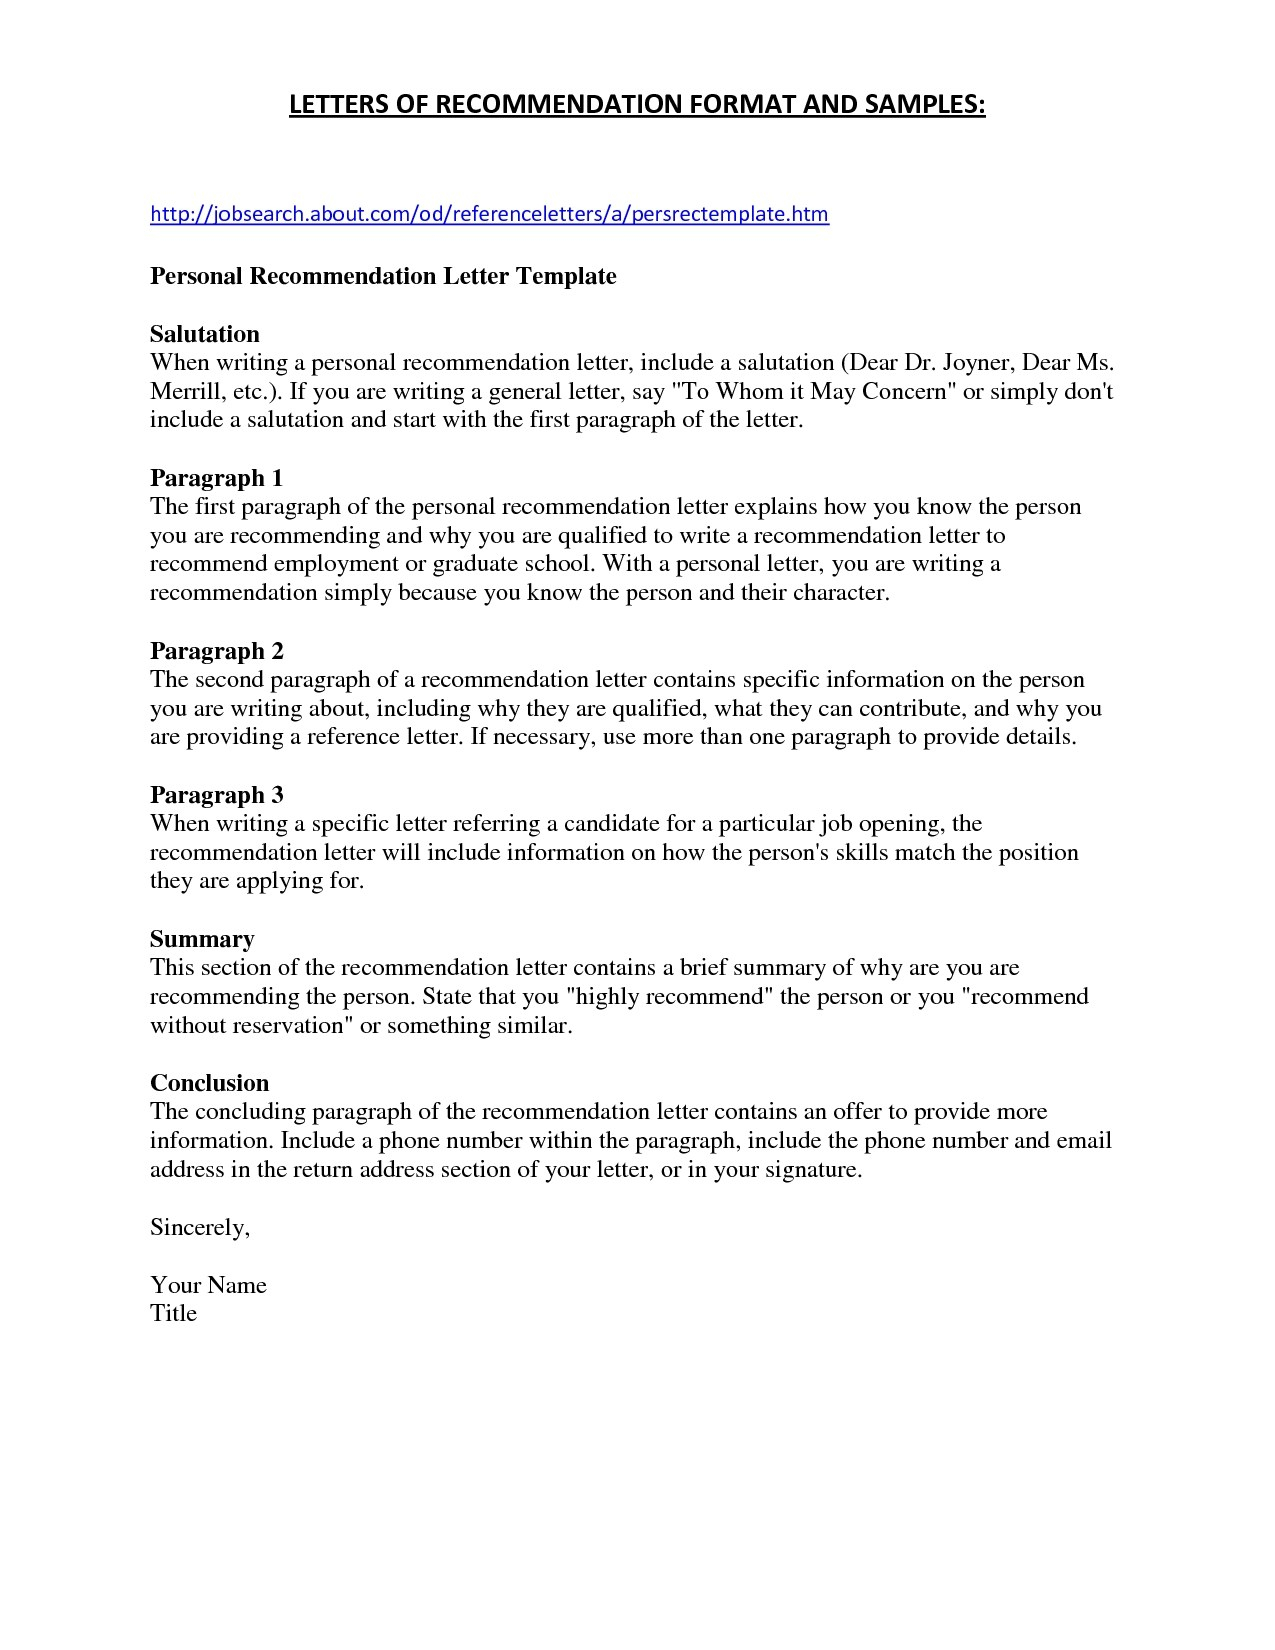 Law School Letter Of Recommendation Template - Law School Letter Re Mendation Unique How to Make A Re